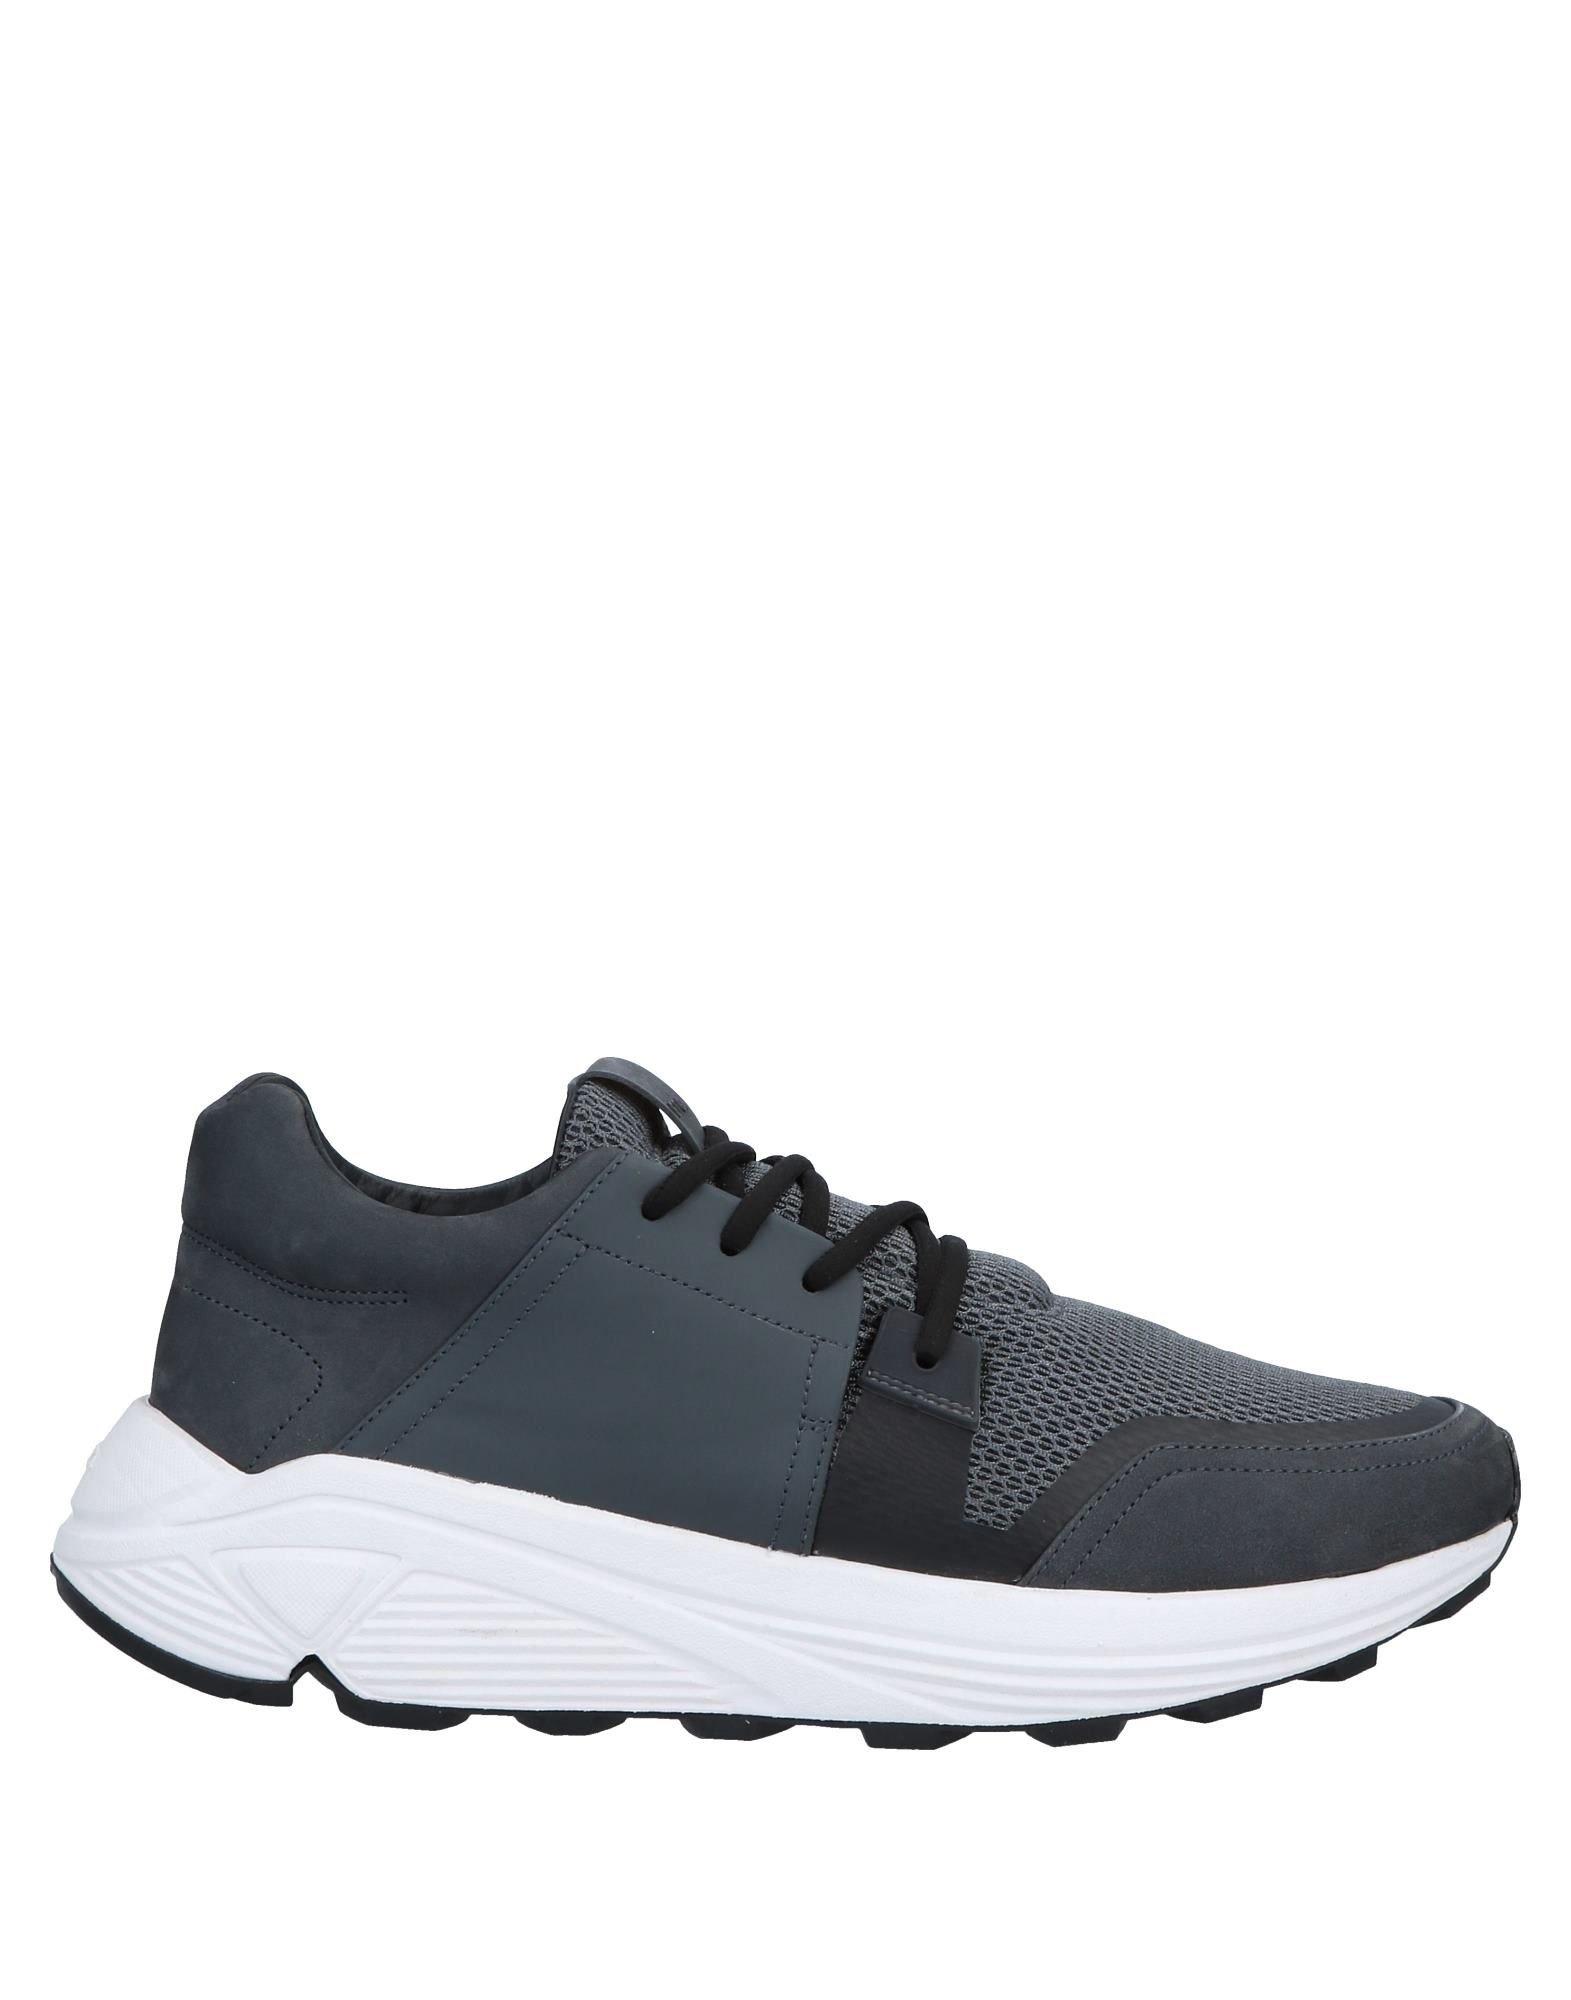 Sneakers Etq Amsterdam Homme - Sneakers Etq Amsterdam  Plomb Mode pas cher et belle